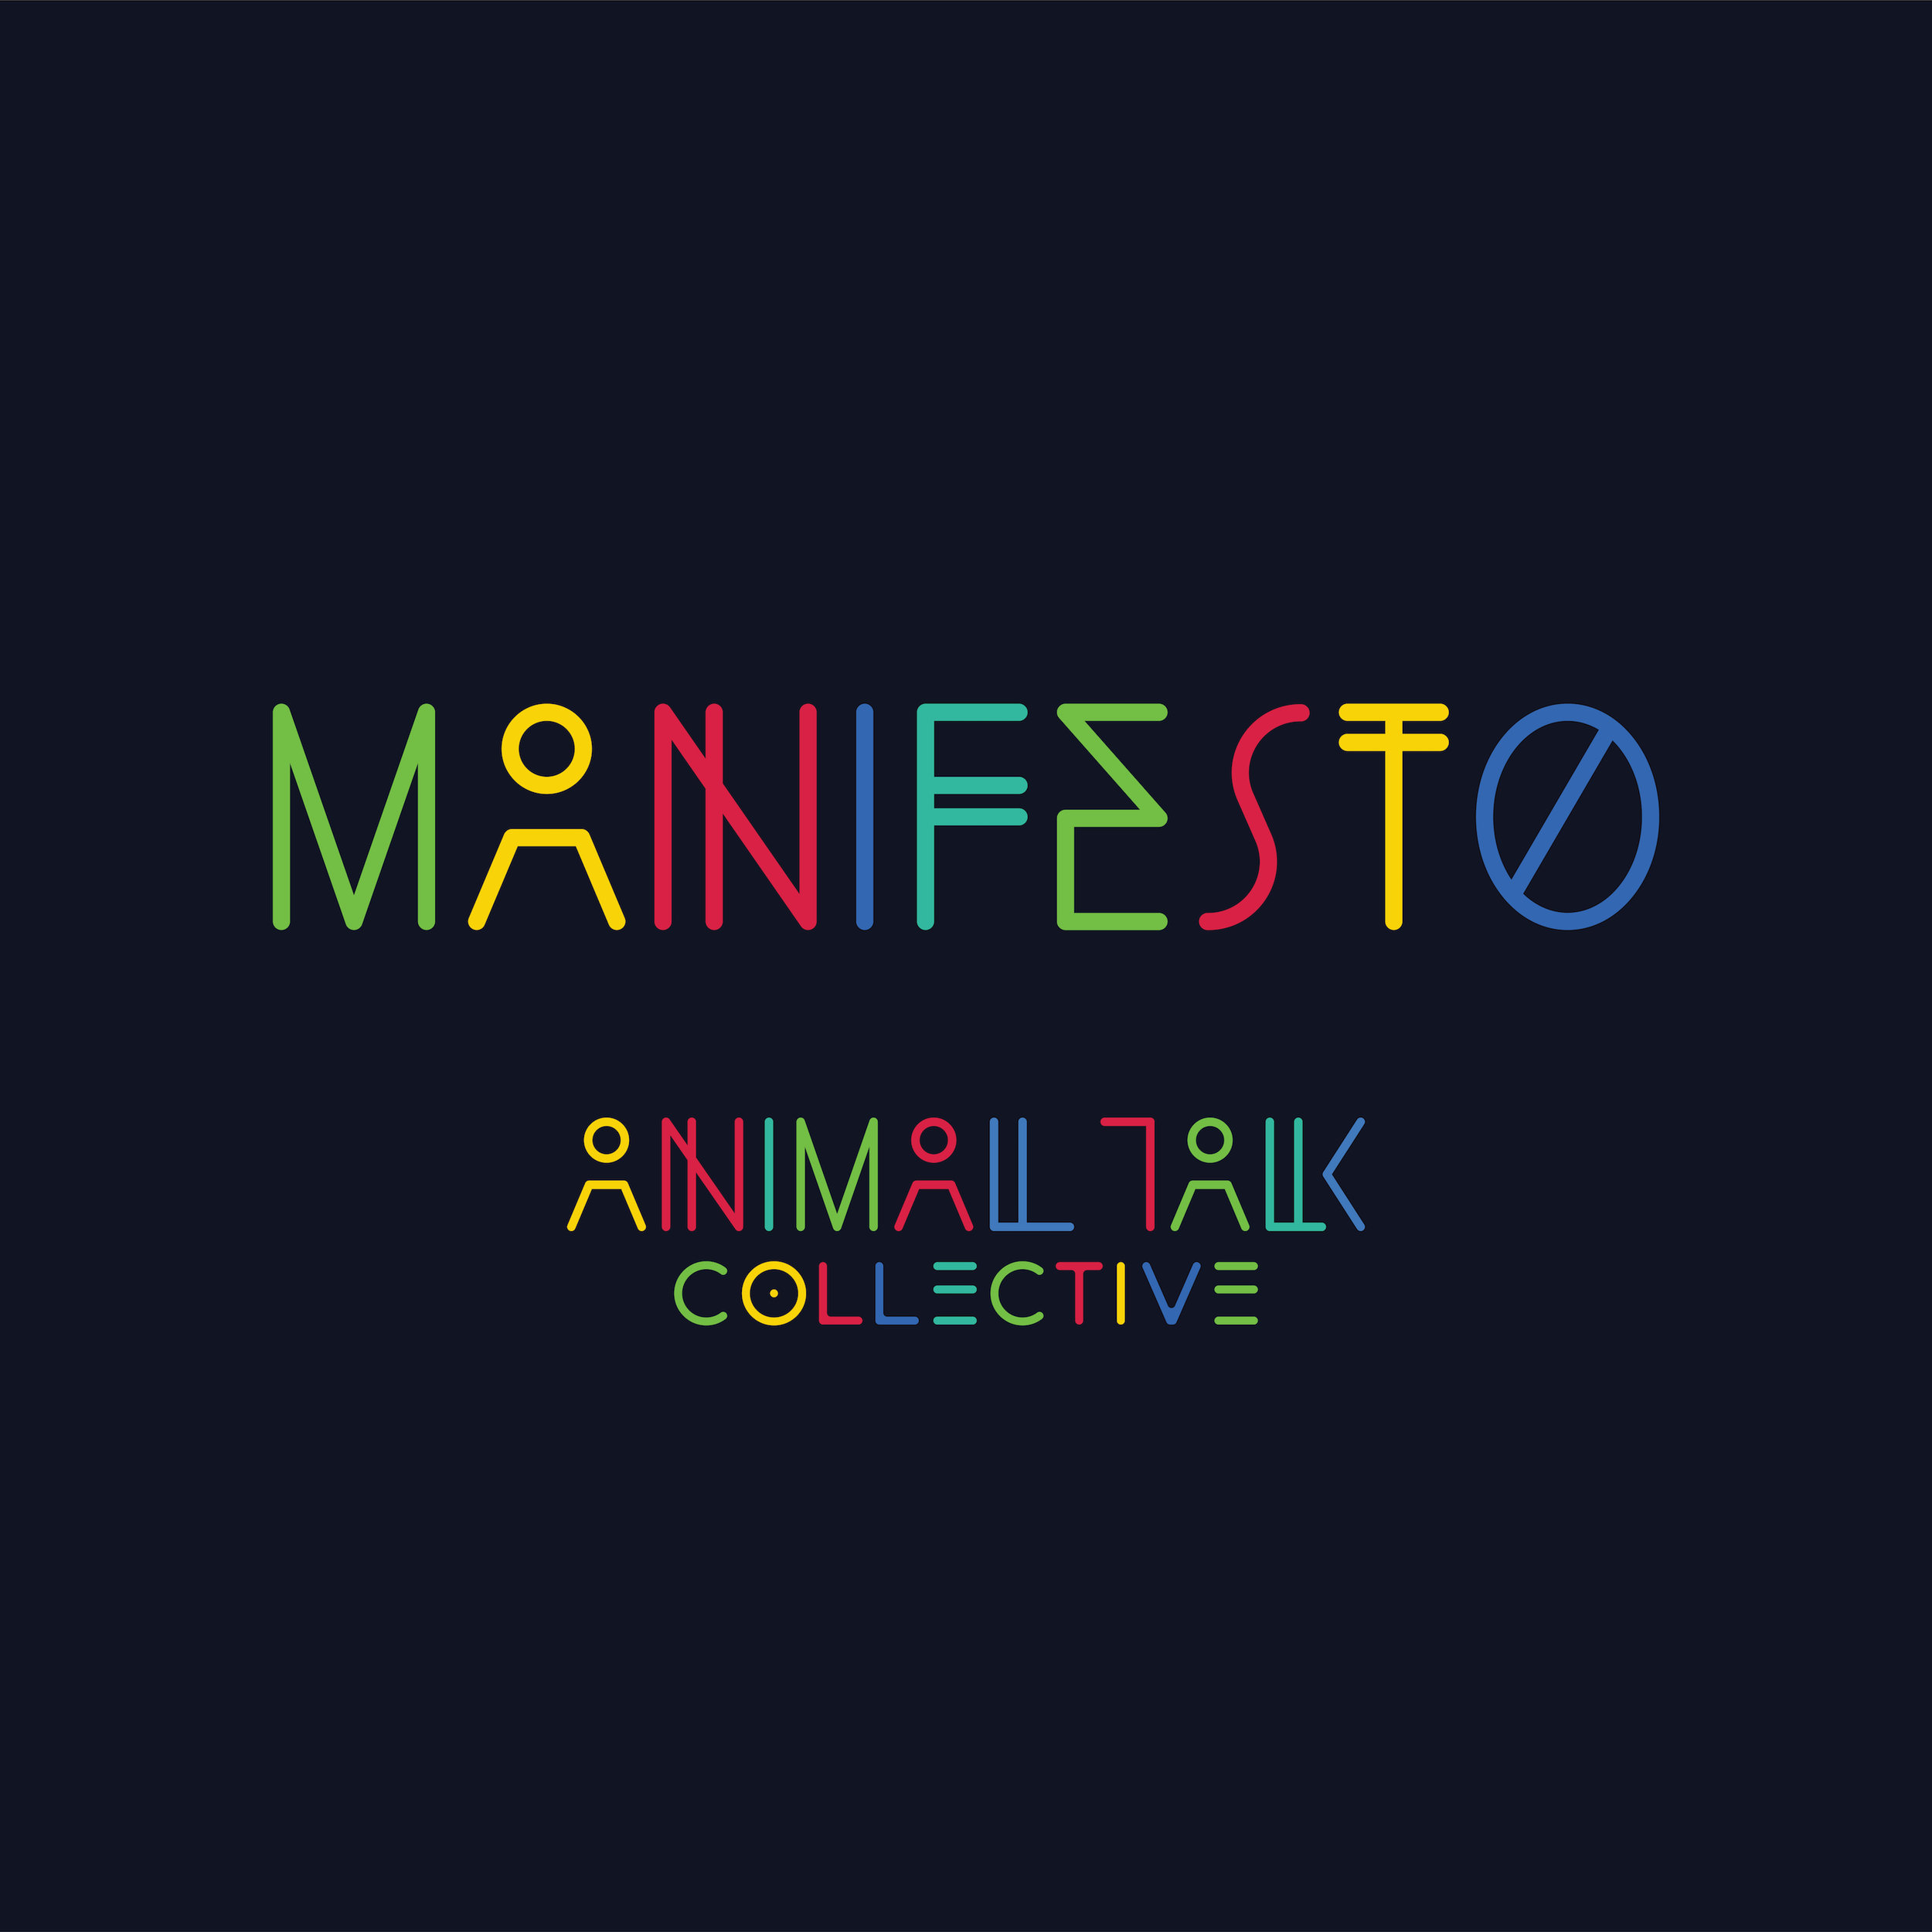 AT_Collective_Manifesto-02 - RESIZE.jpg